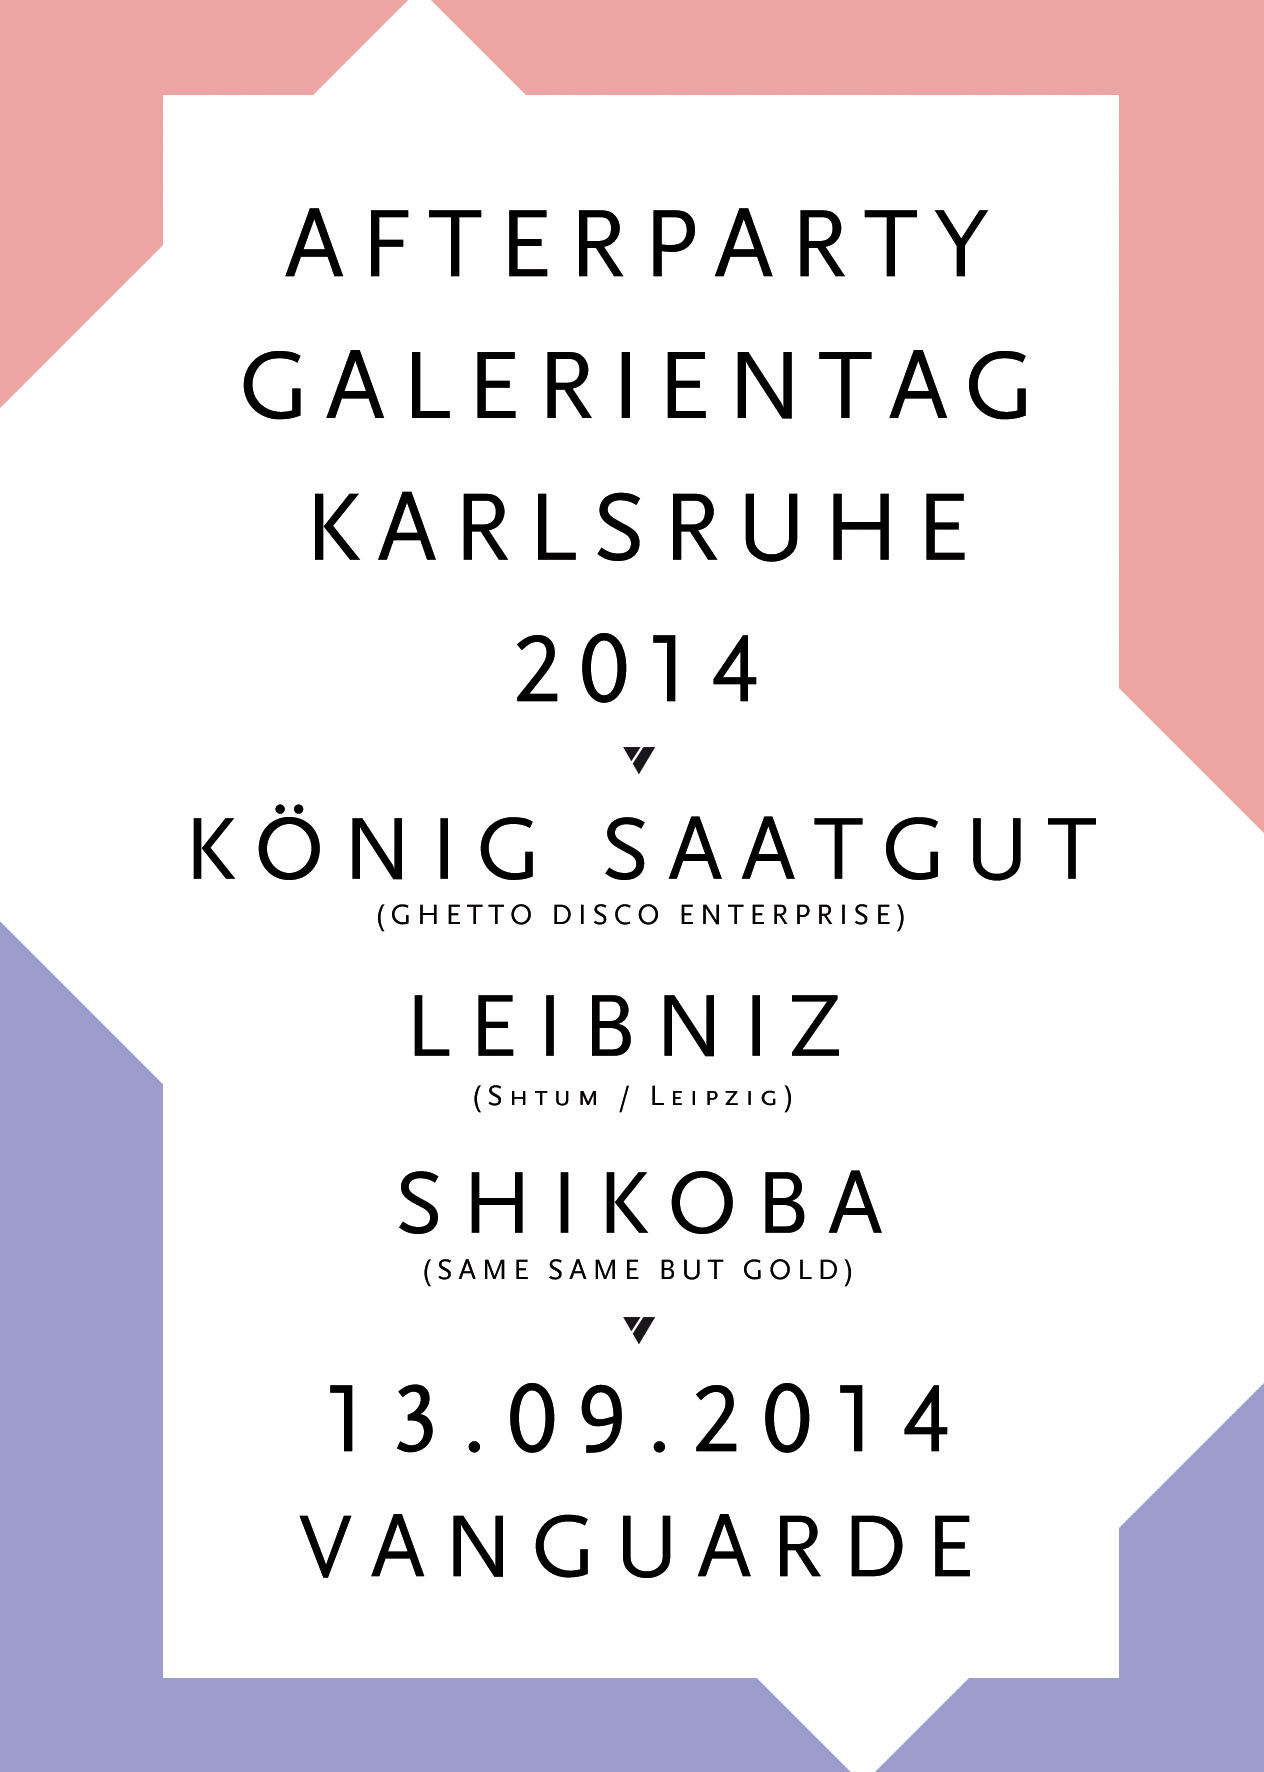 13.09.2014 | Afterparty Galerientag Karlsruhe 2014